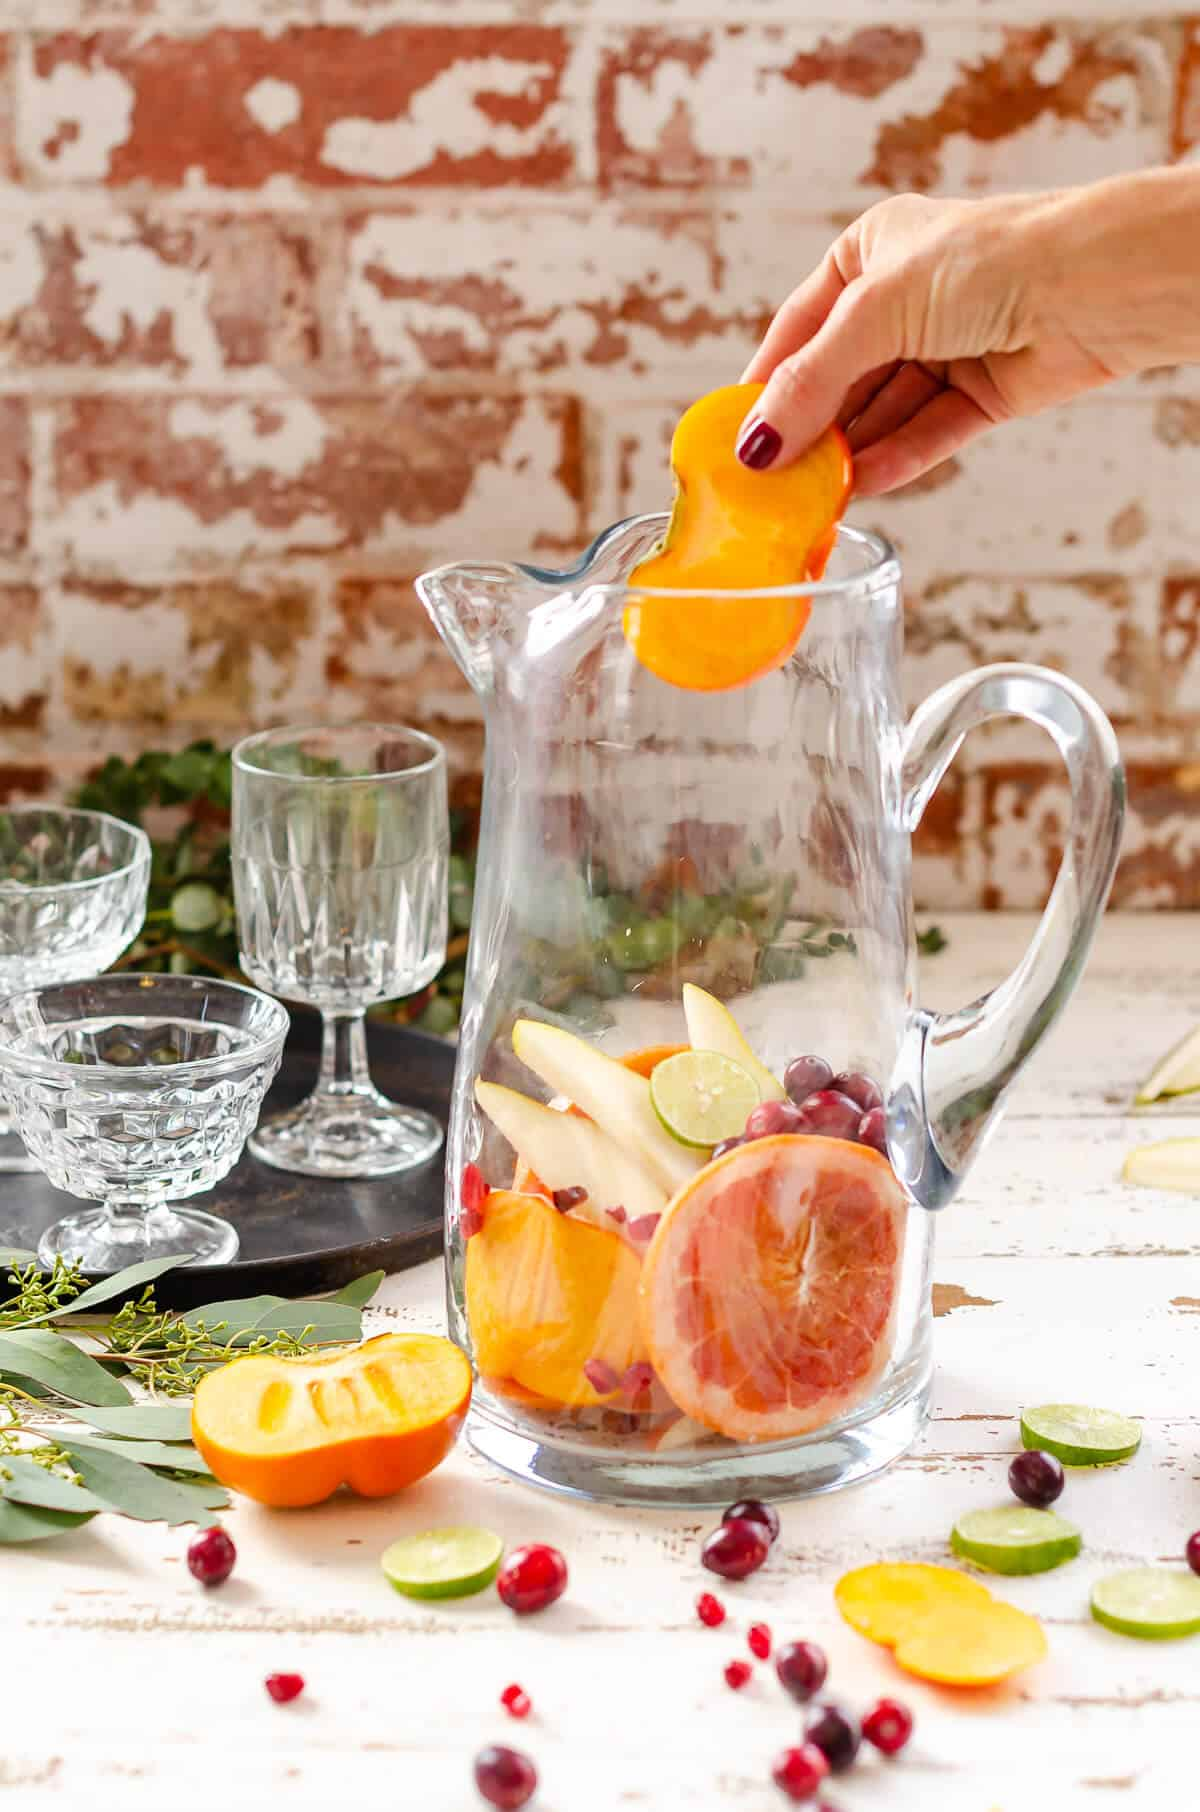 hand adding a slice of persimmon to a clear glass pitcher filled with fresh grapefruit, pears and cranberries for a Sangria Mocktail